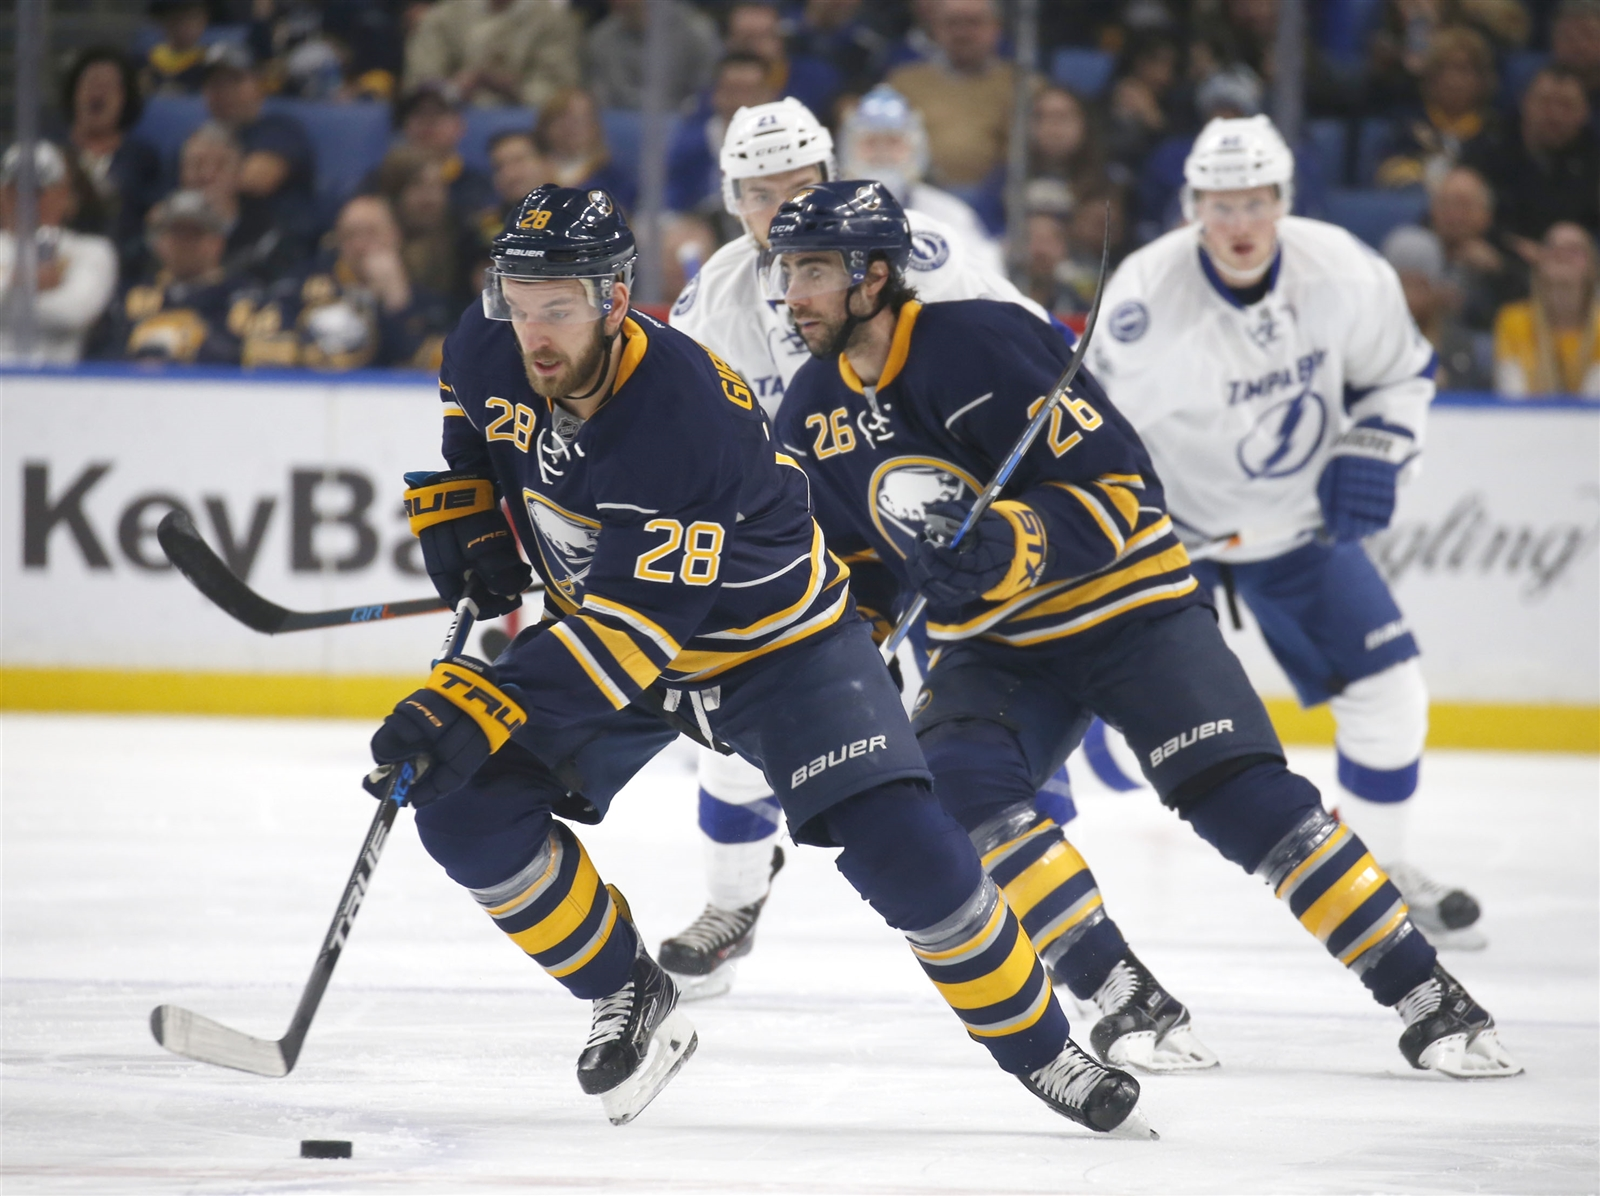 Zemgus Girgensons (28), Matt Moulson and the Sabres have major second-period woes. (Robert Kirkham/Buffalo News)